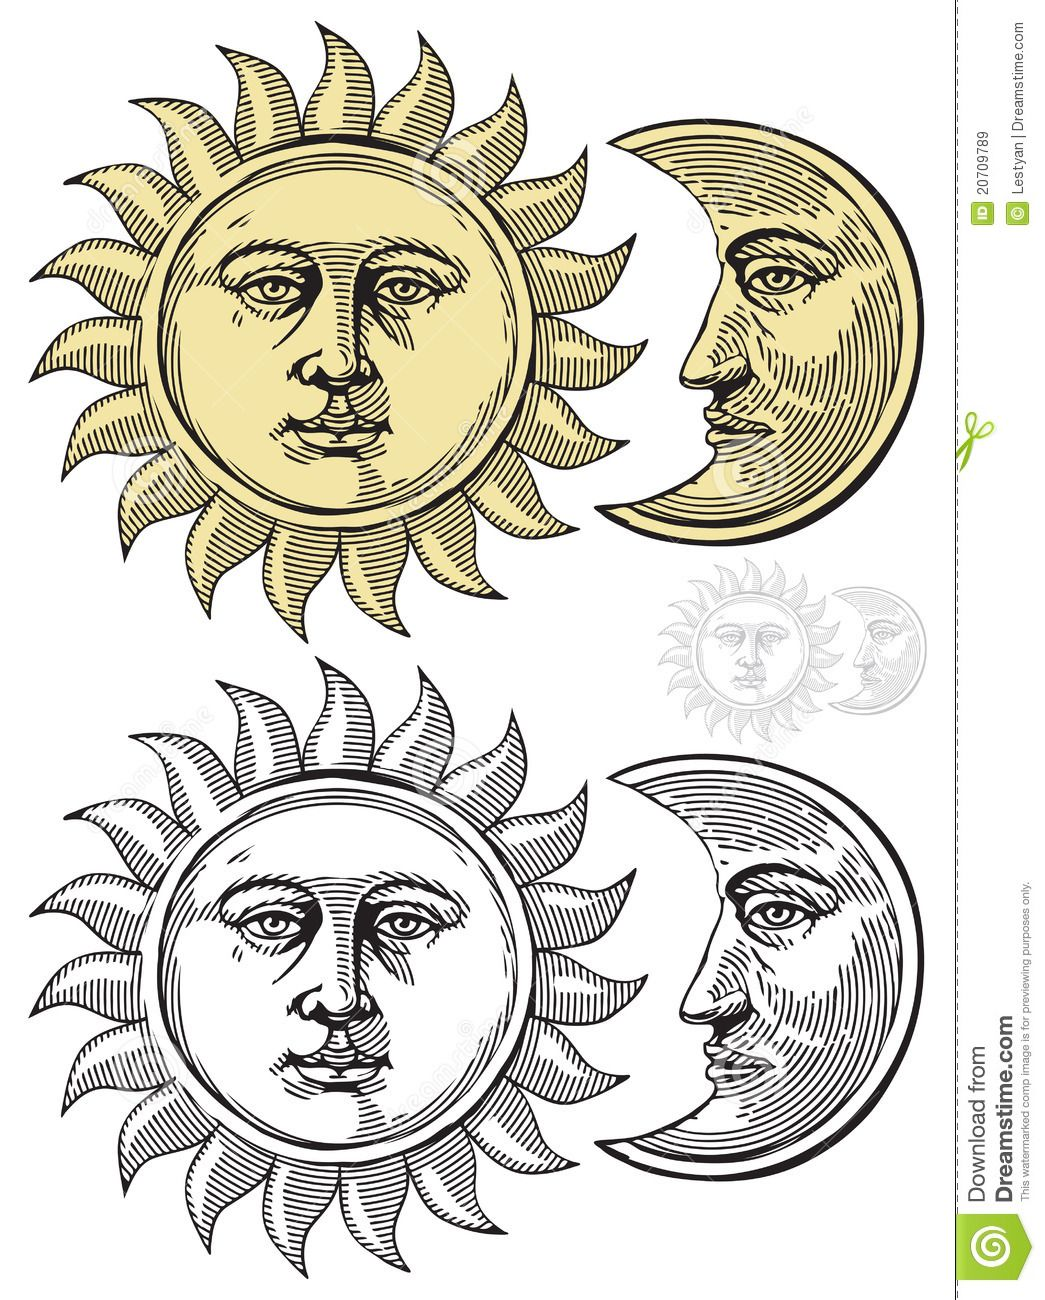 Sun and moon symbol google search perfume inspiration sun and moon symbol google search biocorpaavc Images